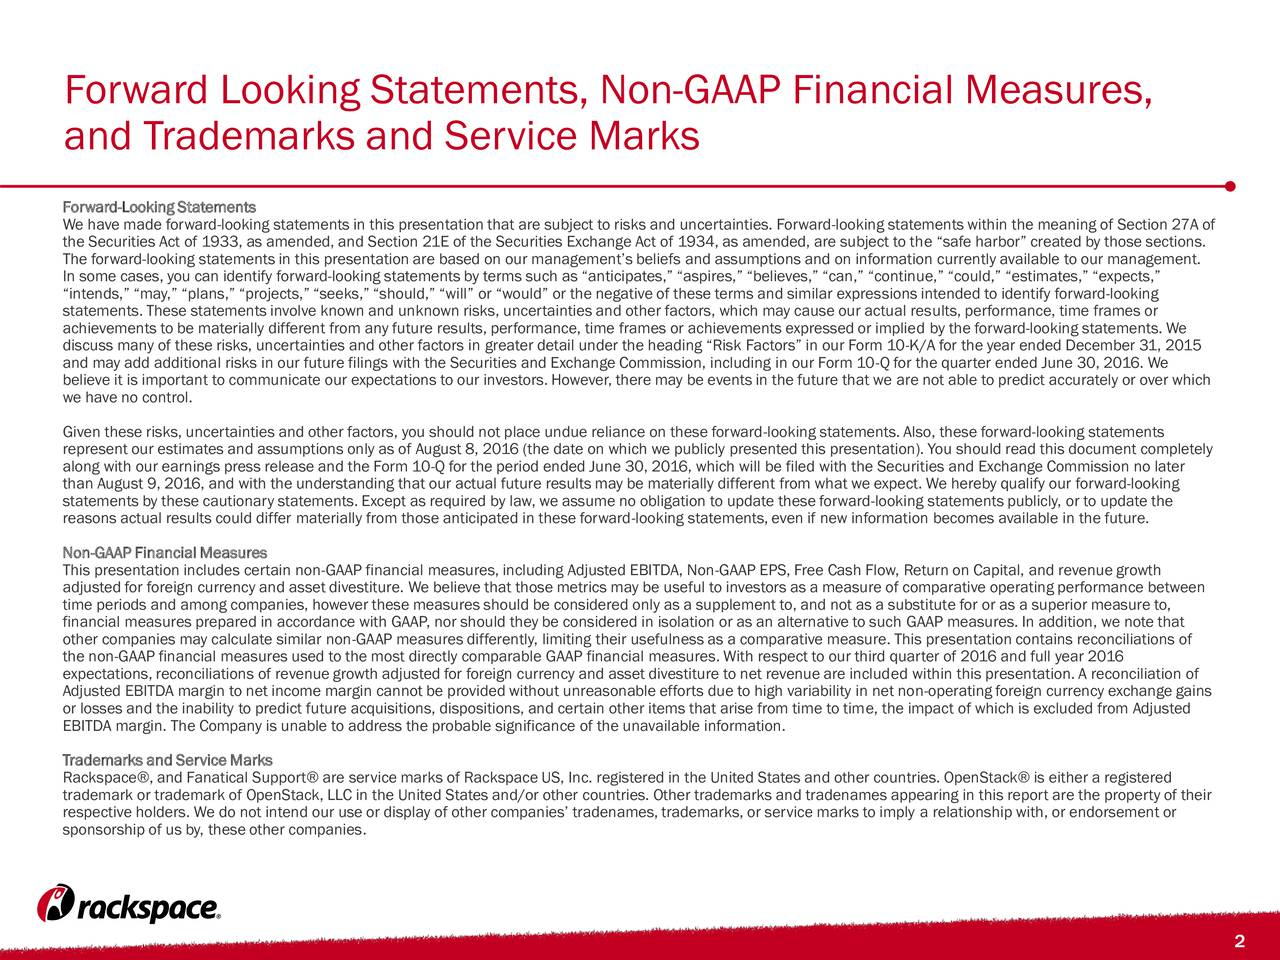 and Trademarks and Service Marks Forward-Looking Statements We have made forward-looking statements in this presentation that are subject to risks and uncertainties. Forward-looking statements within the meaning of Section 27A of the Securities Act of 1933, as amended, and Section 21E of the Securities Exchange Act of 1934, as amended, are subject to the safe harbor created by those sections. The forward-looking statements in this presentation are based on our managements beliefs and assumptions and on information currently available to our management. In some cases, you can identify forward-looking statements by terms such as anticipates, aspires, believes, can, continue, could, estimates, expects, intends, may, plans, projects, seeks, should, will or would or the negative of these terms and similar expressions intended to identify forward-looking statements. These statements involve known and unknown risks, uncertainties and other factors, which may cause our actual results, performance, time frames or achievements to be materially different from any future results, performance, time frames or achievements expressed or implied by the forward-looking statements. We discuss many of these risks, uncertainties and other factors in greater detail under the heading Risk Factors in our Form 10-K/A for the year ended December 31, 2015 and may add additional risks in our future filings with the Securities and Exchange Commission, including in our Form 10-Q for the quarter ended June 30, 2016. We believe it is important to communicate our expectations to our investors. However, there may be events in the future that we are not able to predict accurately or over which we have no control. Given these risks, uncertainties and other factors, you should not place undue reliance on these forward-looking statements. Also, these forward-looking statements represent our estimates and assumptions only as of August 8, 2016 (the date on which we publicly presented this presentation). Y